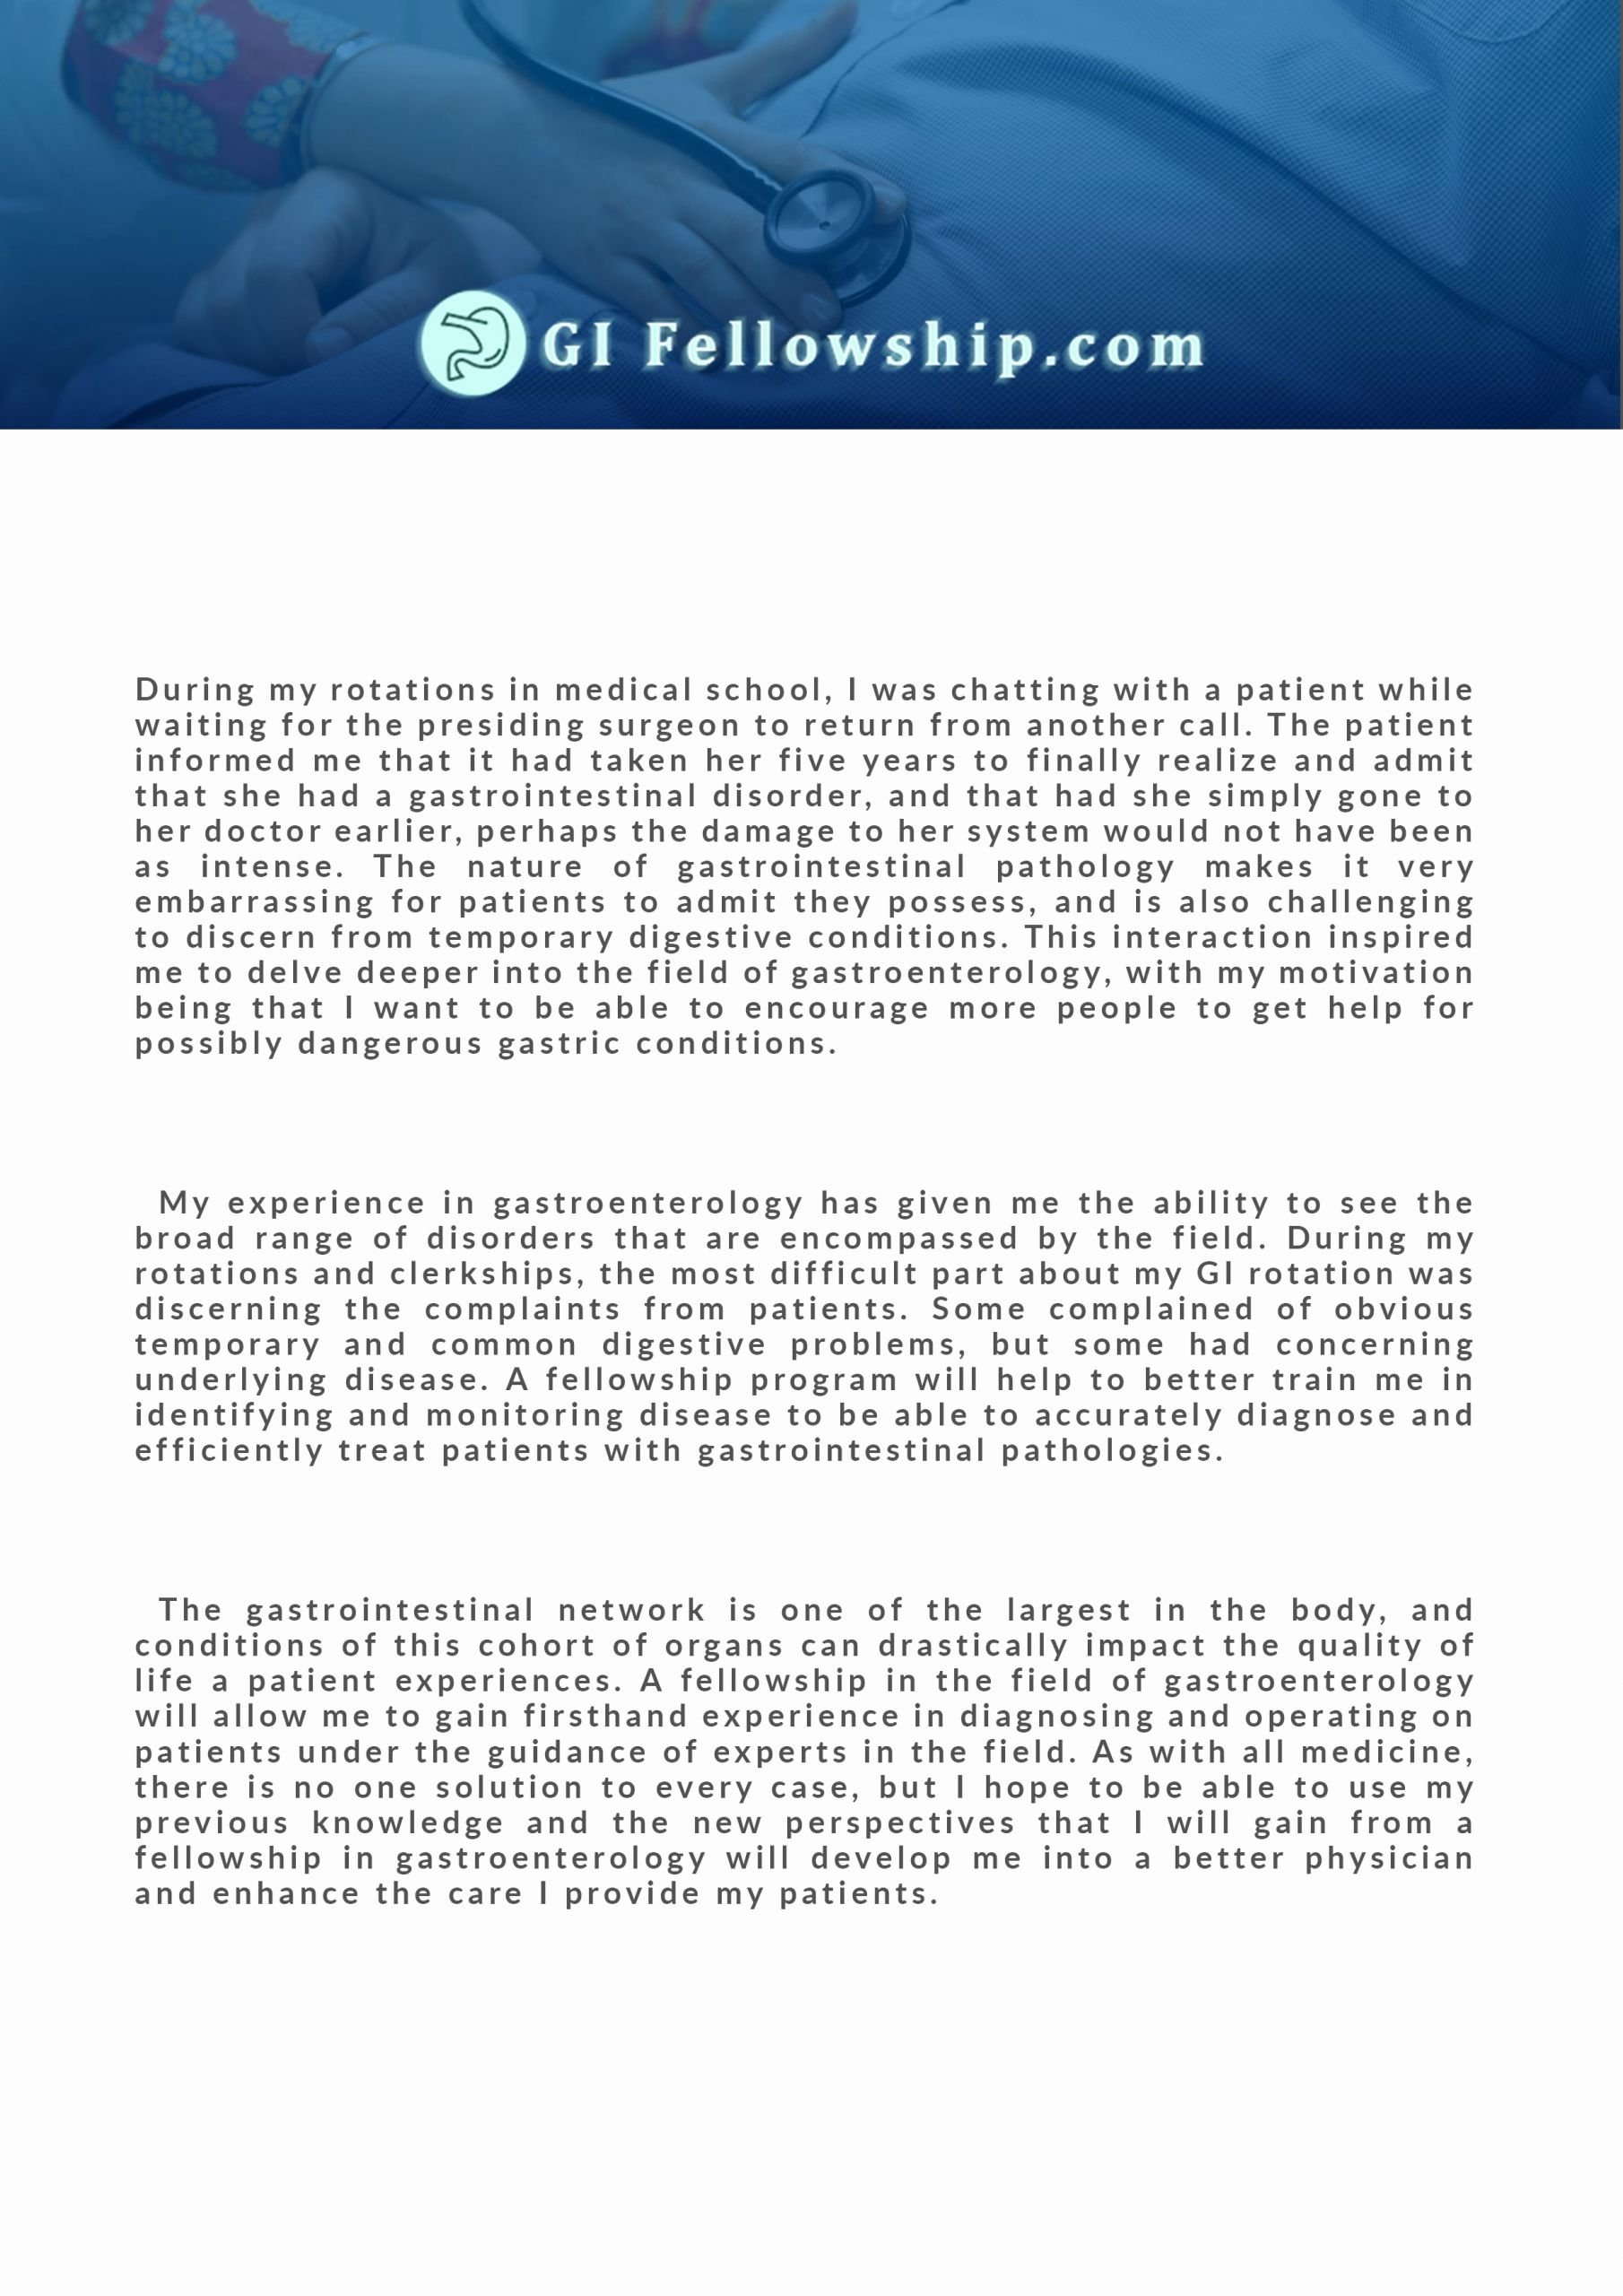 Personal Statement for Fellowship Sample New Gi Fellowship Personal Statement Sample and Writing Help